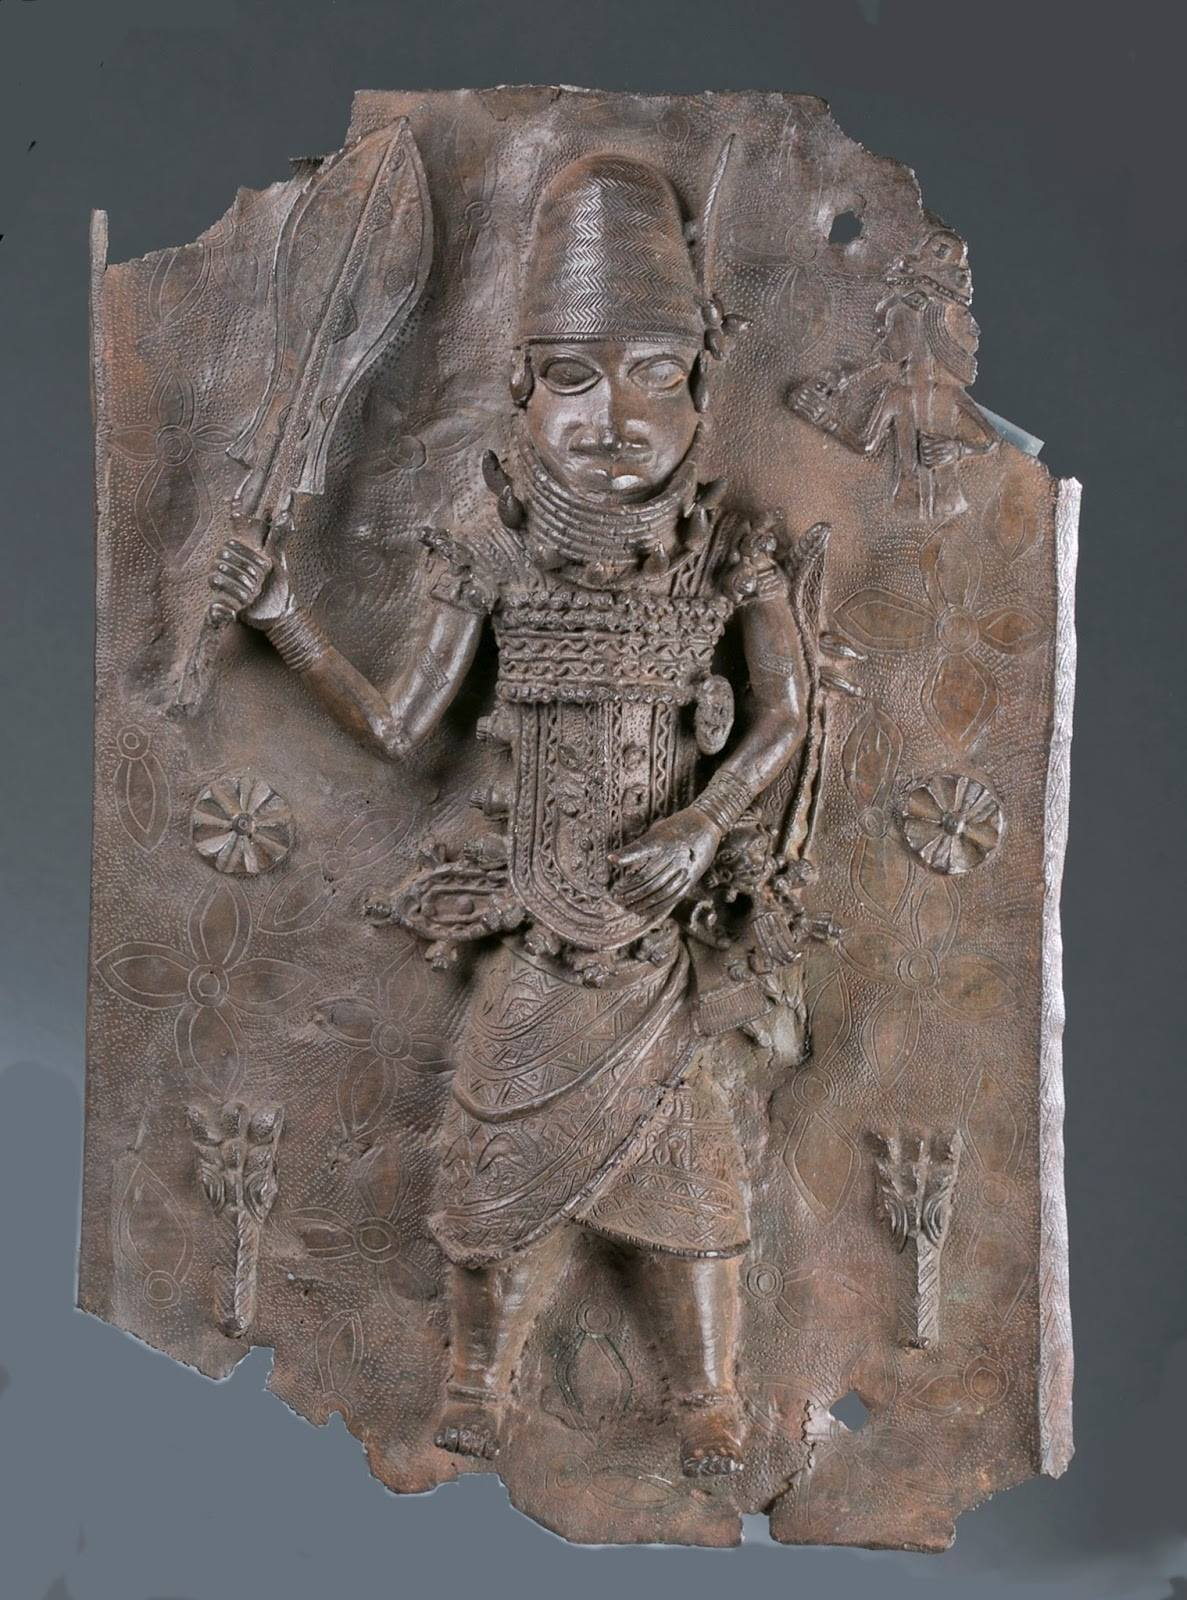 16th Century Benin Plaque to be auctioned for $800,000-1.2Million Dollars Today